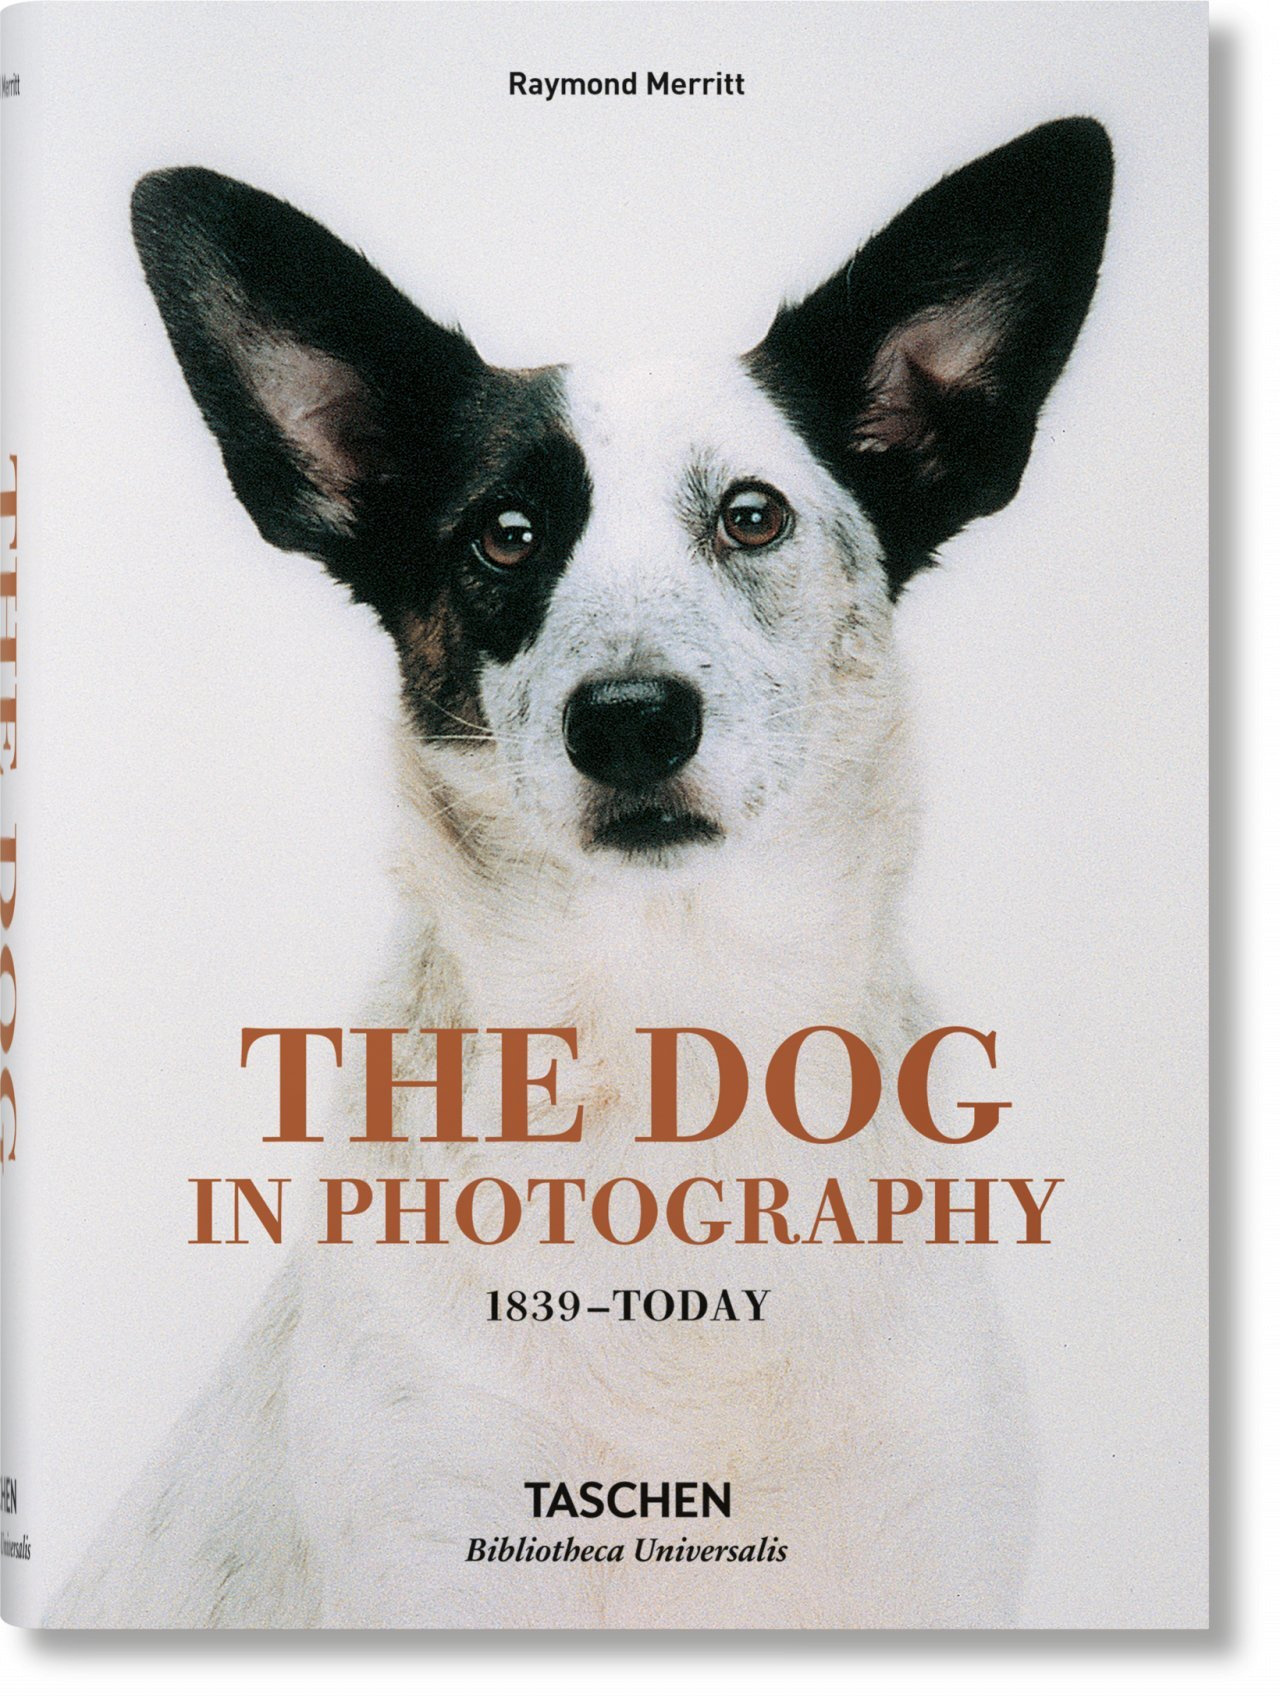 BU-THE DOG IN PHOTOGRAPHY